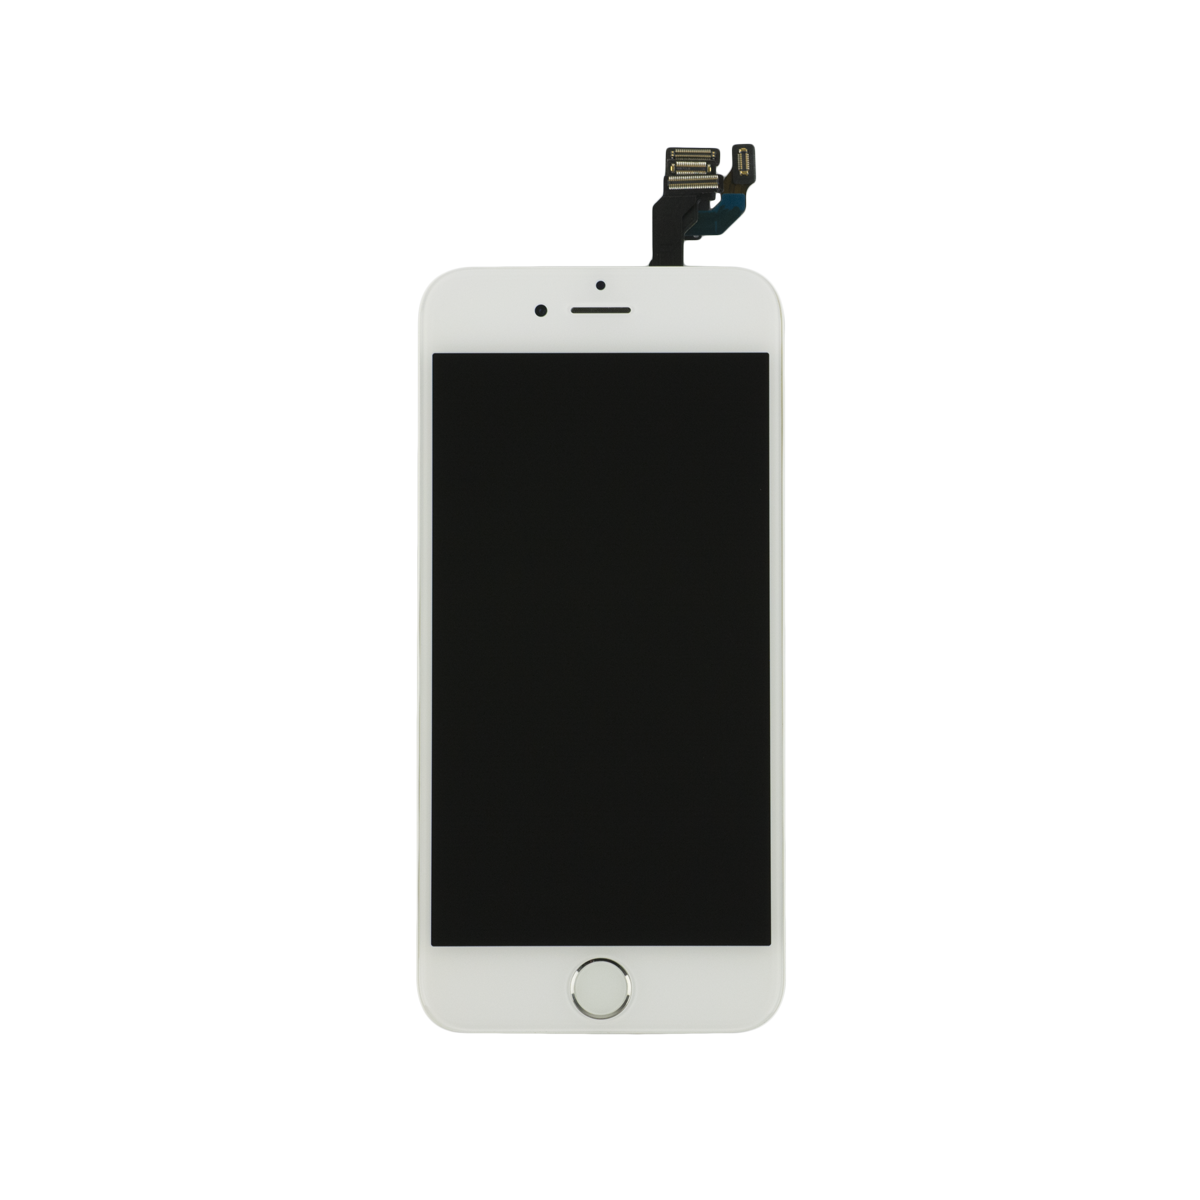 For Apple iPhone 6 6G - LCD Digitizer Touch Screen Assembly - With Spare Parts - White - OEM